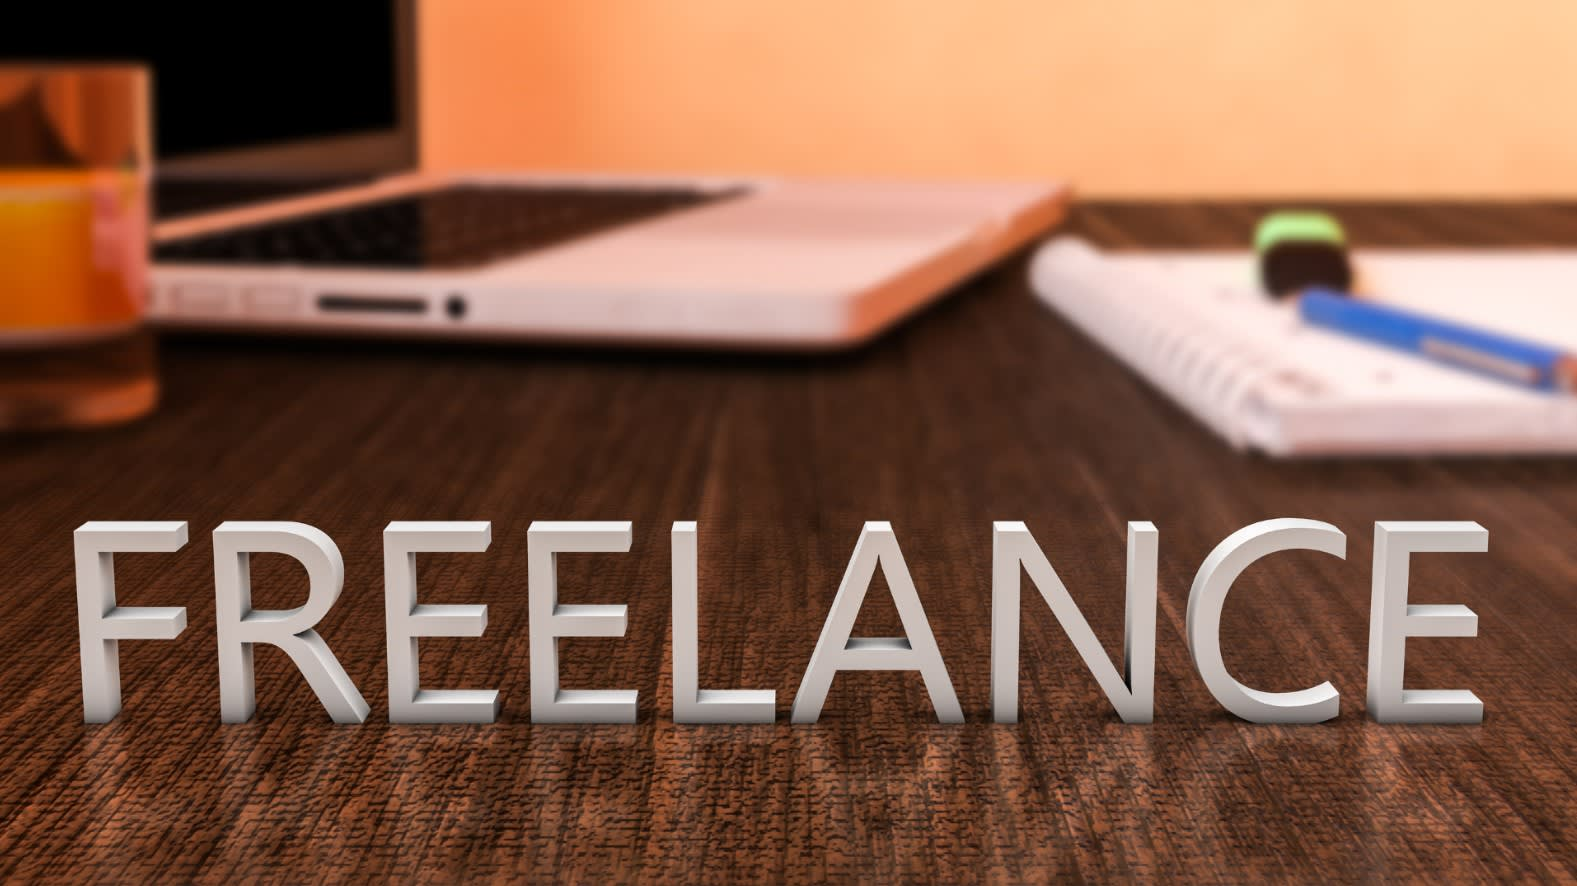 TOP 5 Freelance Platforms' Client Report Pages Analyzed & Compared